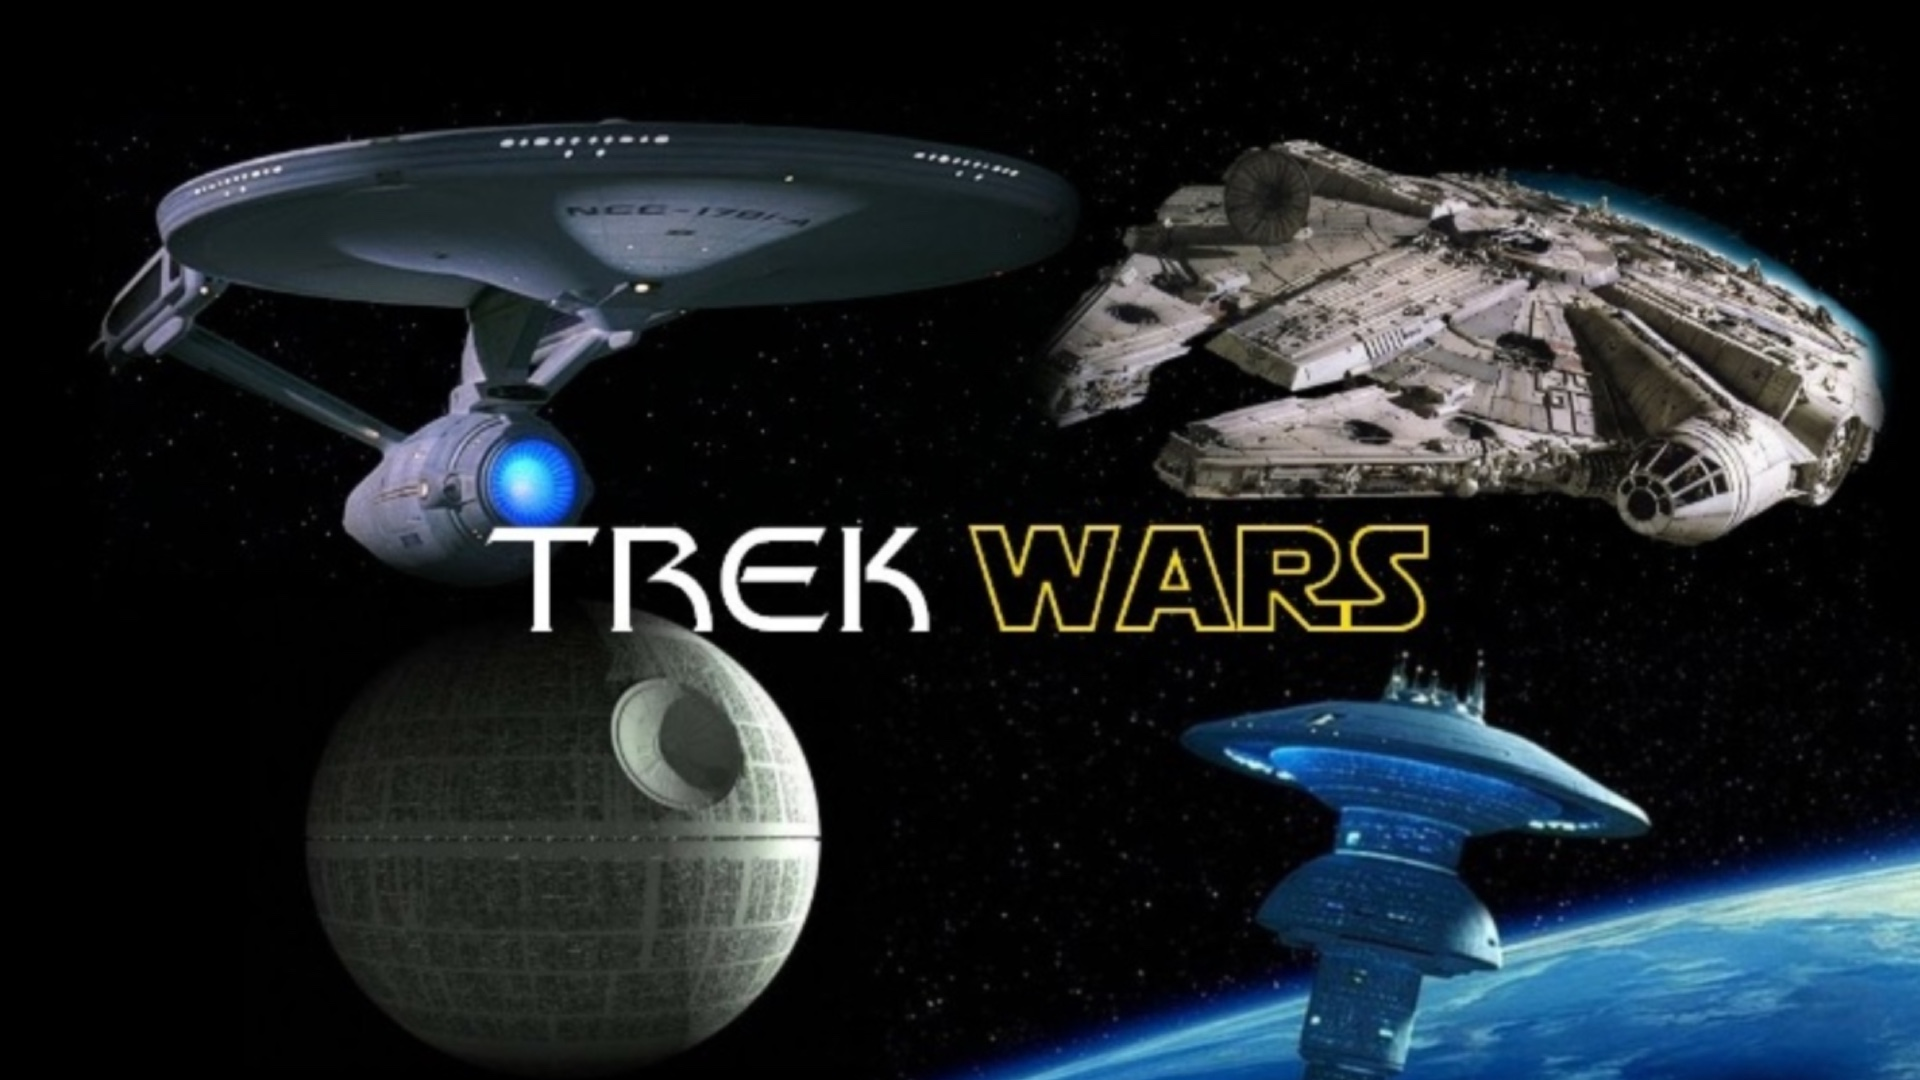 the-federation-and-rebels-join-forces-to-fight-the-empire-in-trek-wars-fan-trailer-social.jpg